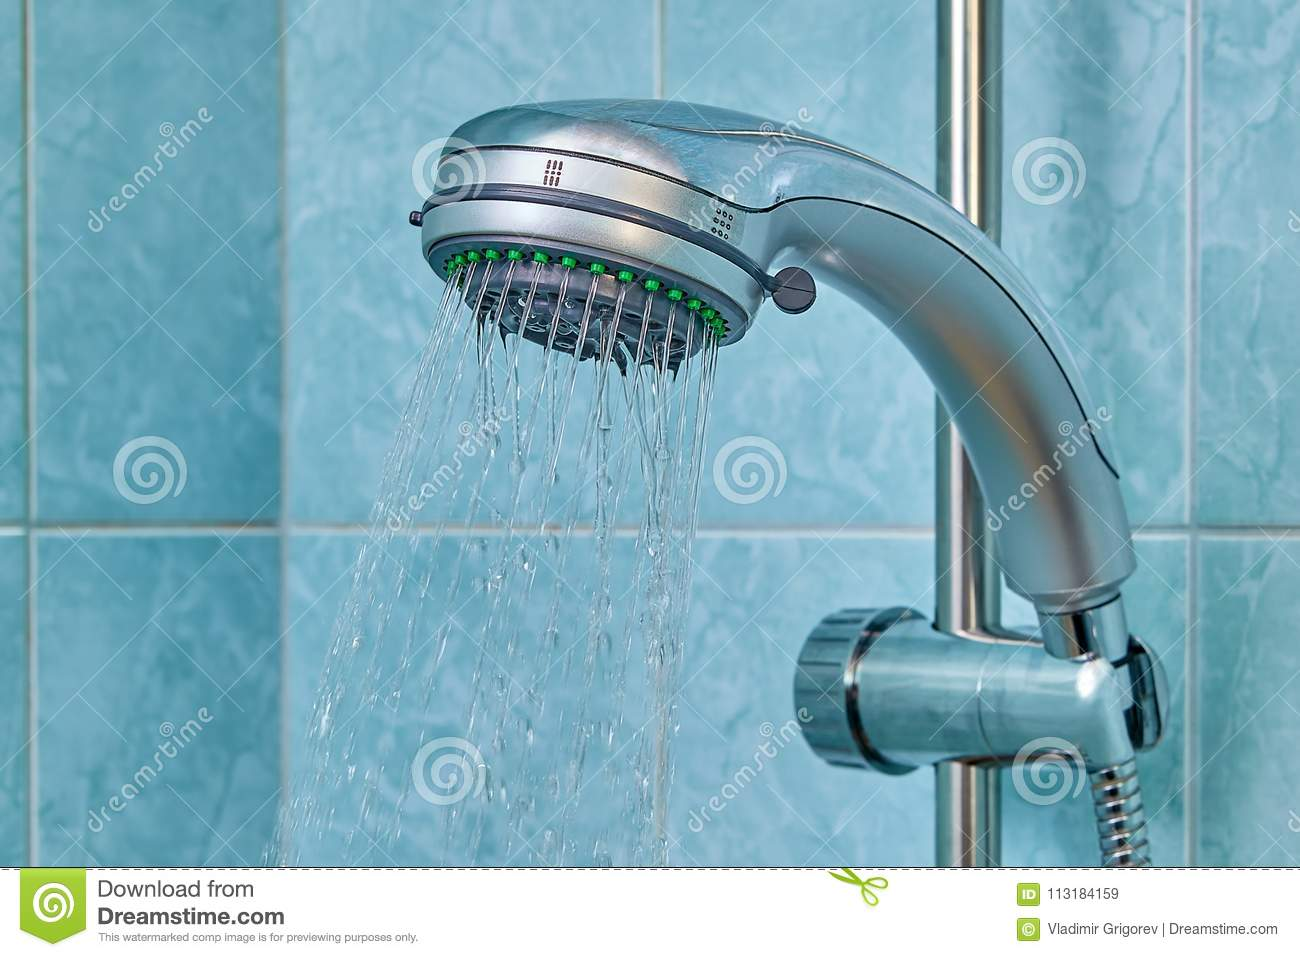 Water Flows From Shower Head Inside Bathroom, Fixed In Holder. Stock ...